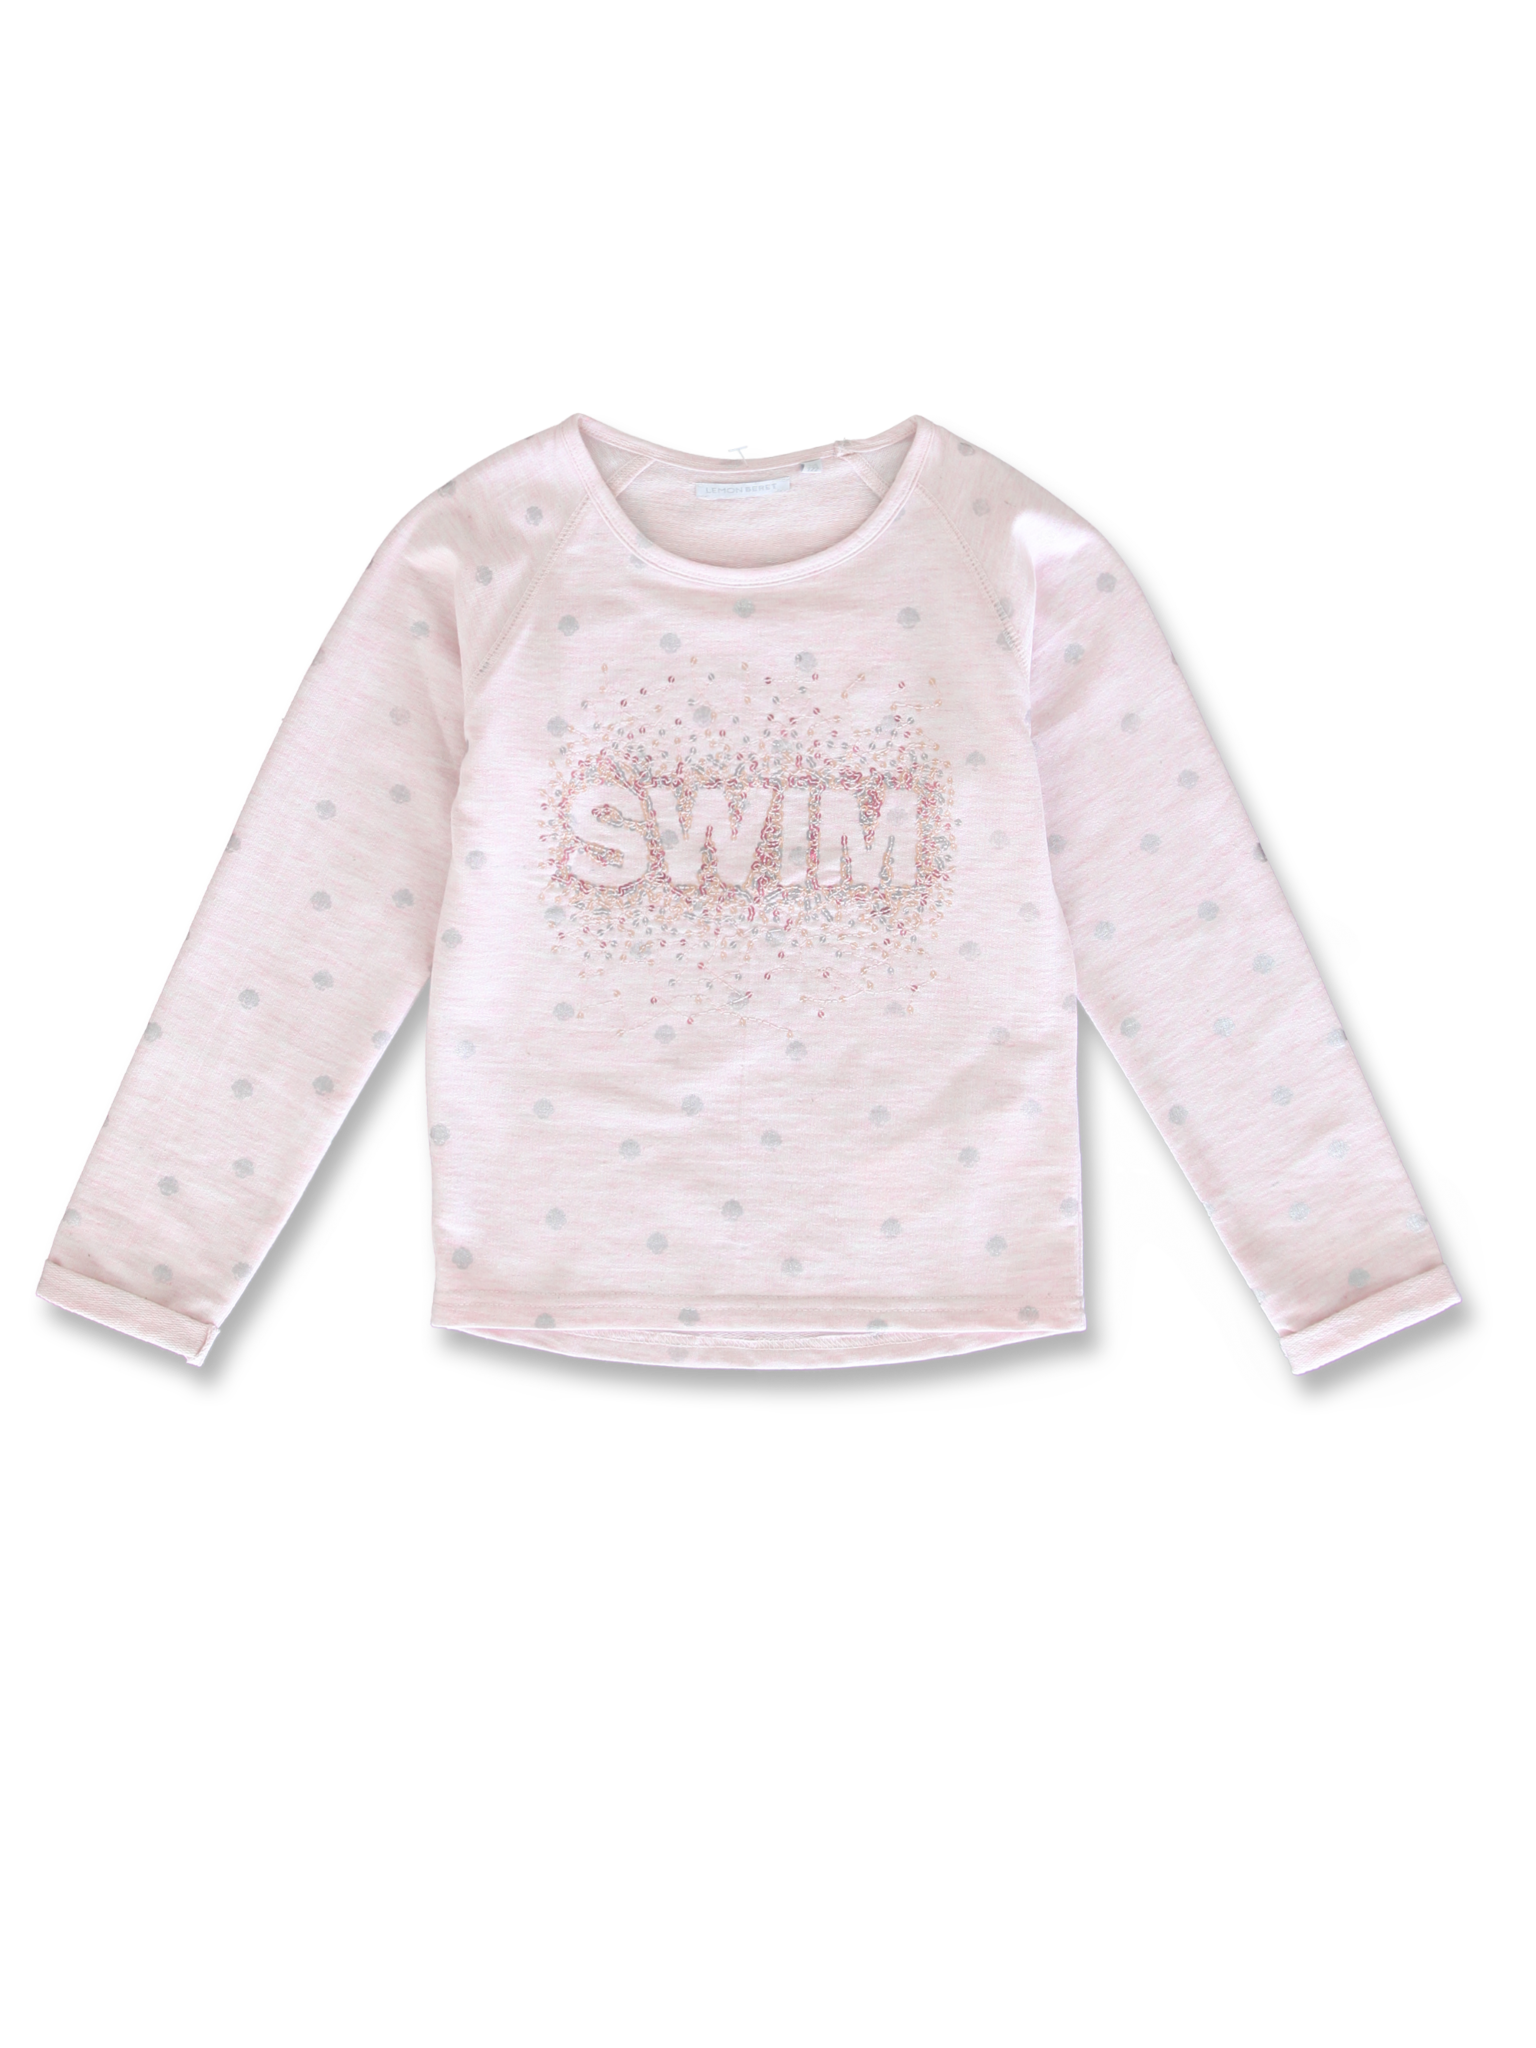 All Brands | Summerproducts Small Girls | Sweatshirt | 10 pcs/box